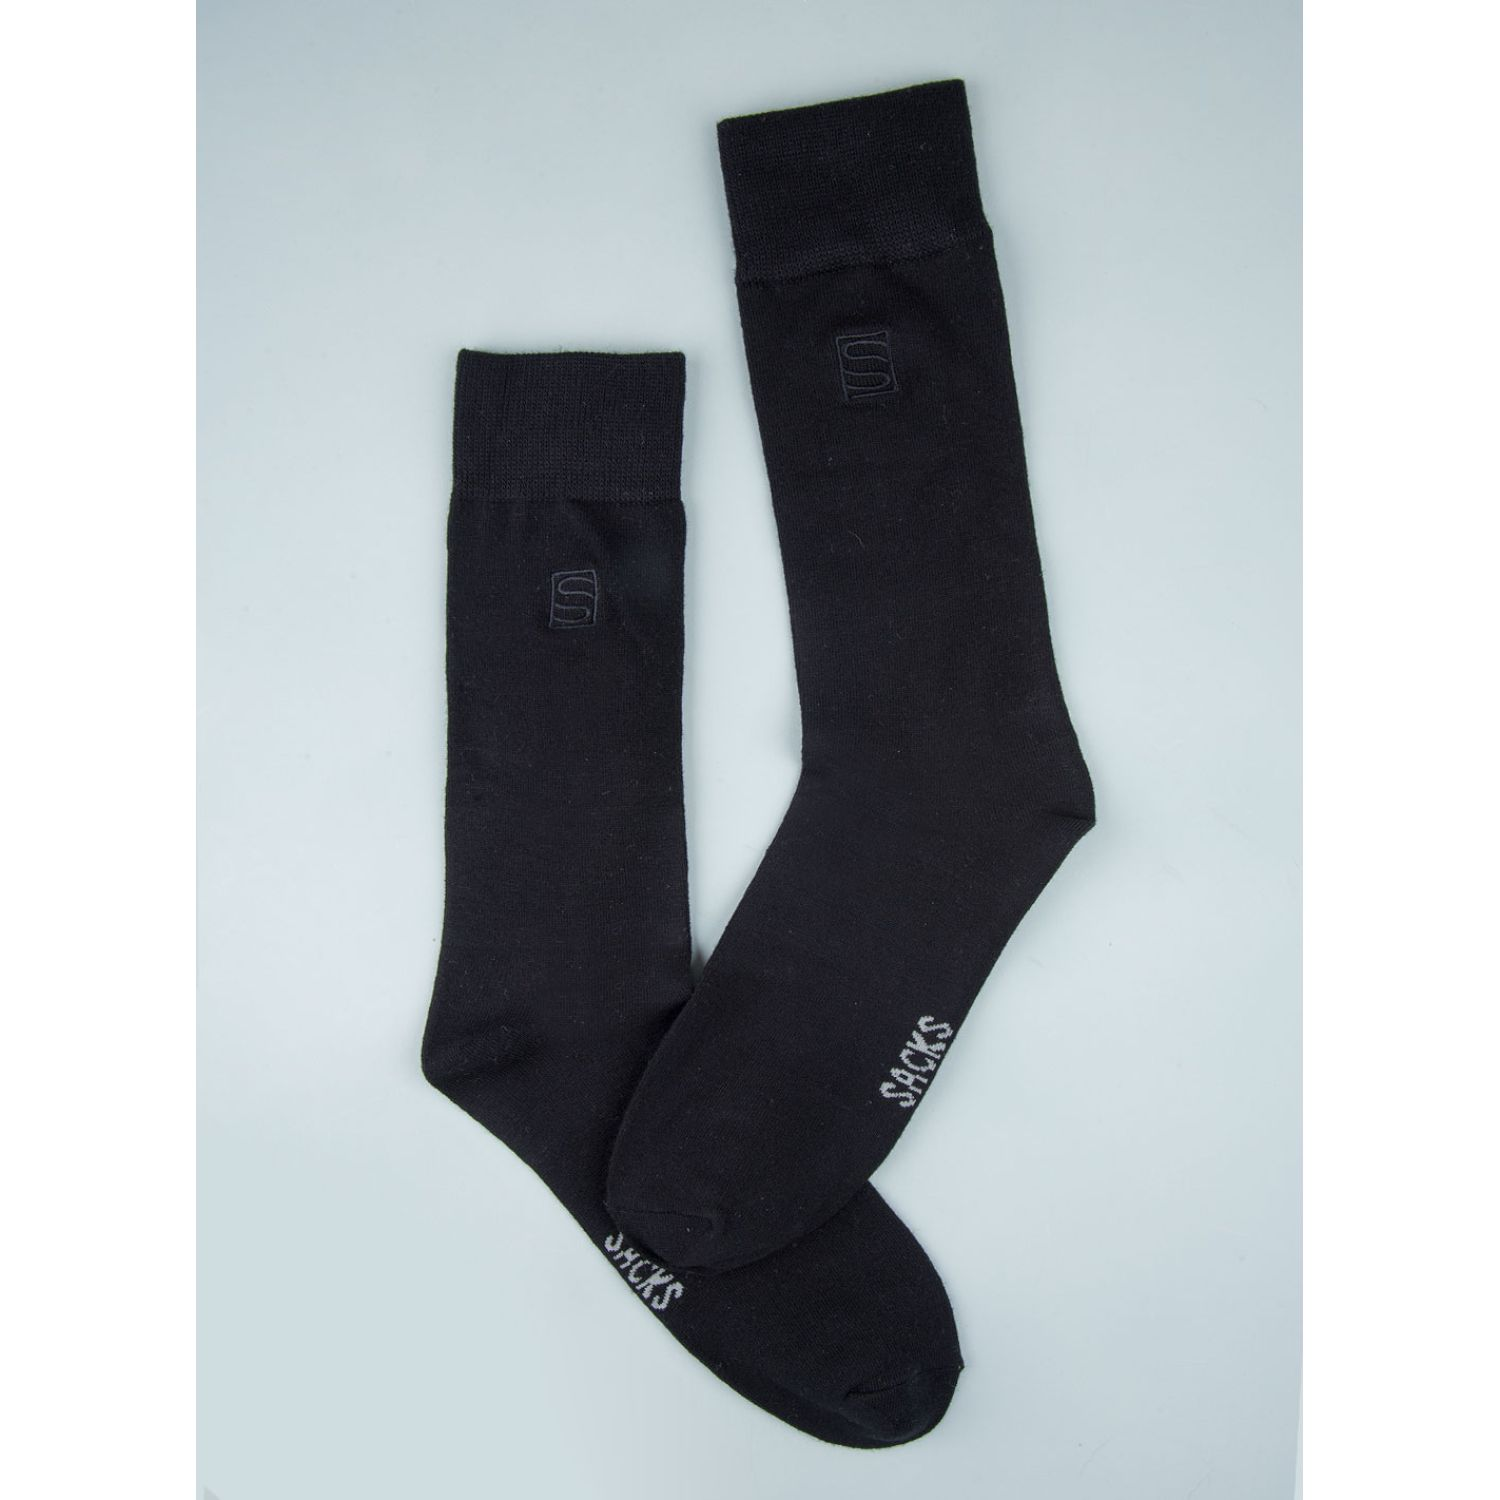 SISI BAMBOO INNOVATION Black Calcetines